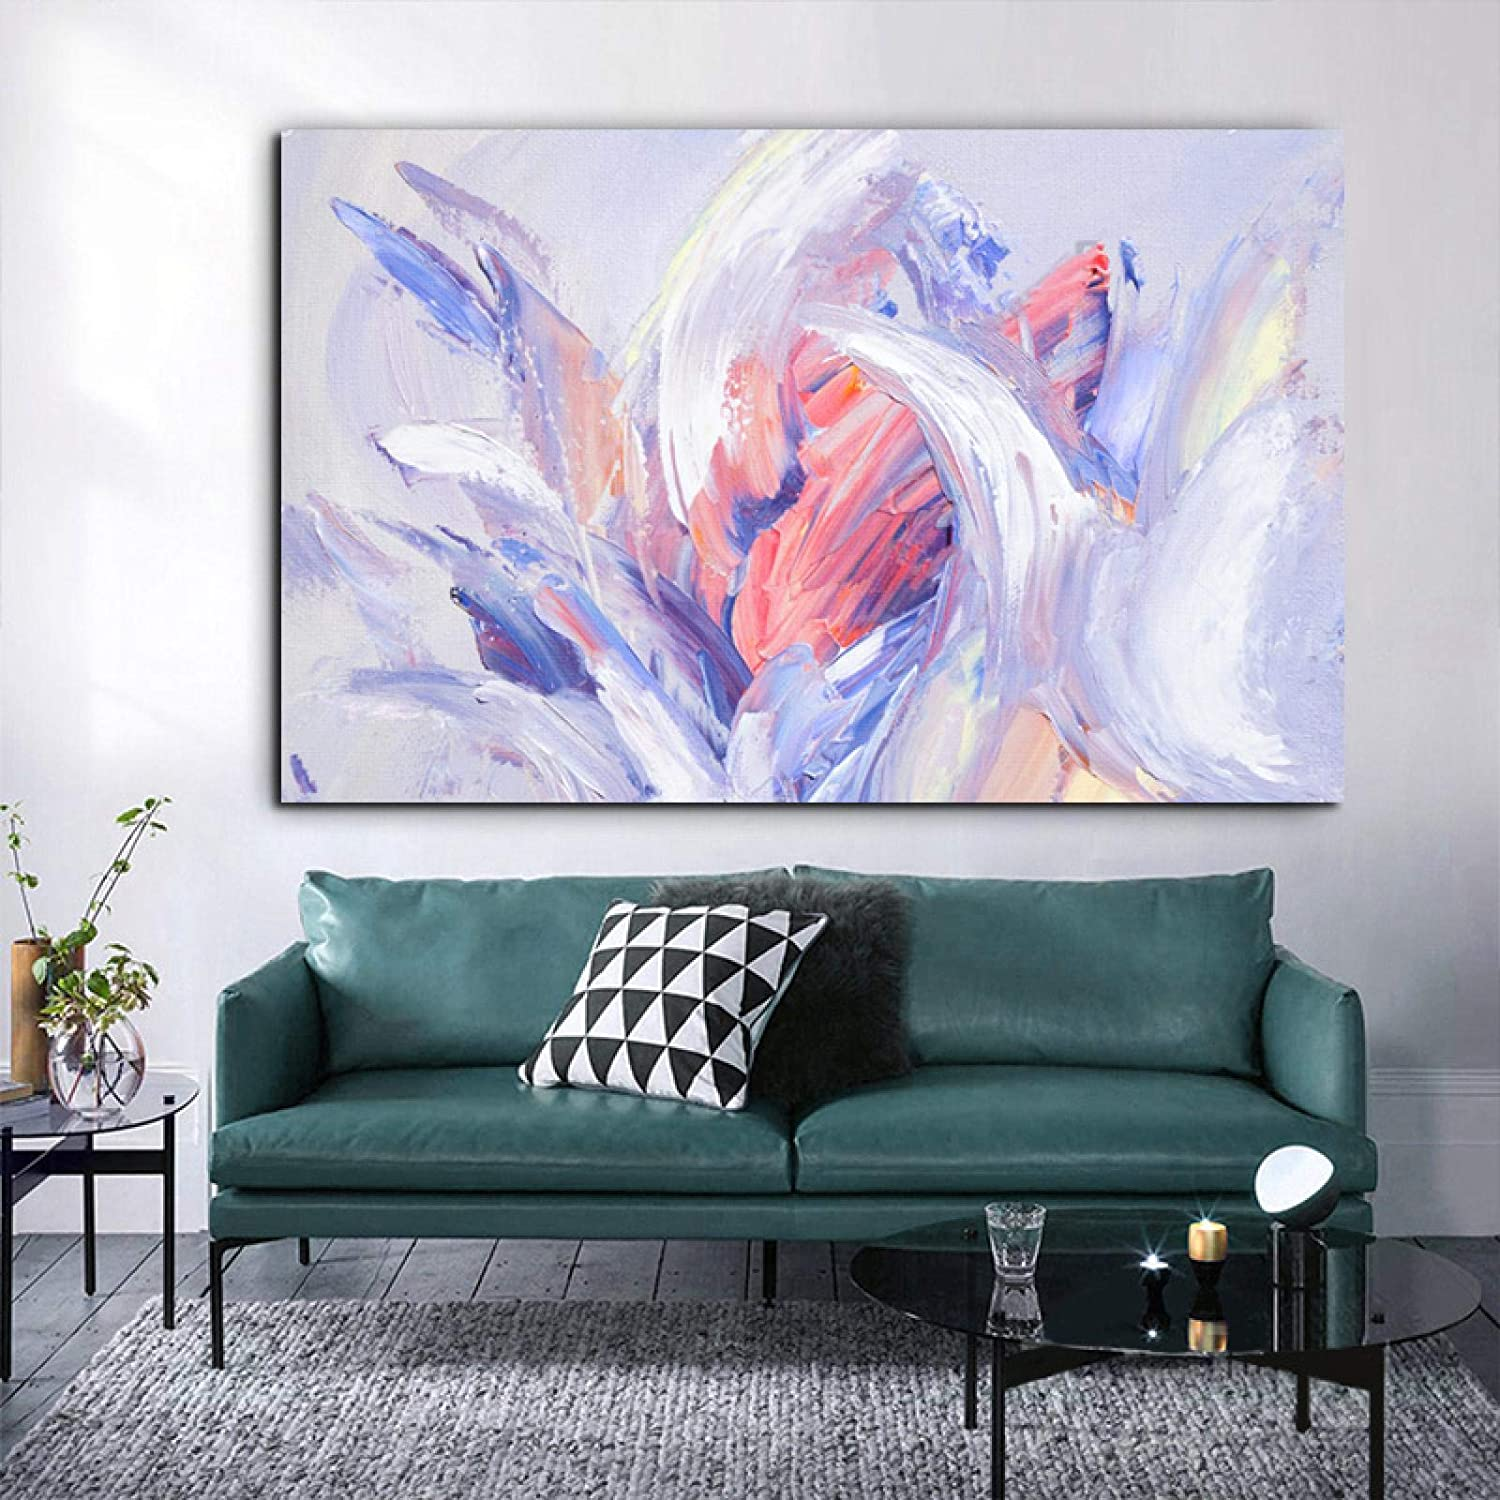 Beautiful Flower Poster Wall 4 years warranty Art Pri And Max 85% OFF Canvas Posters Painting